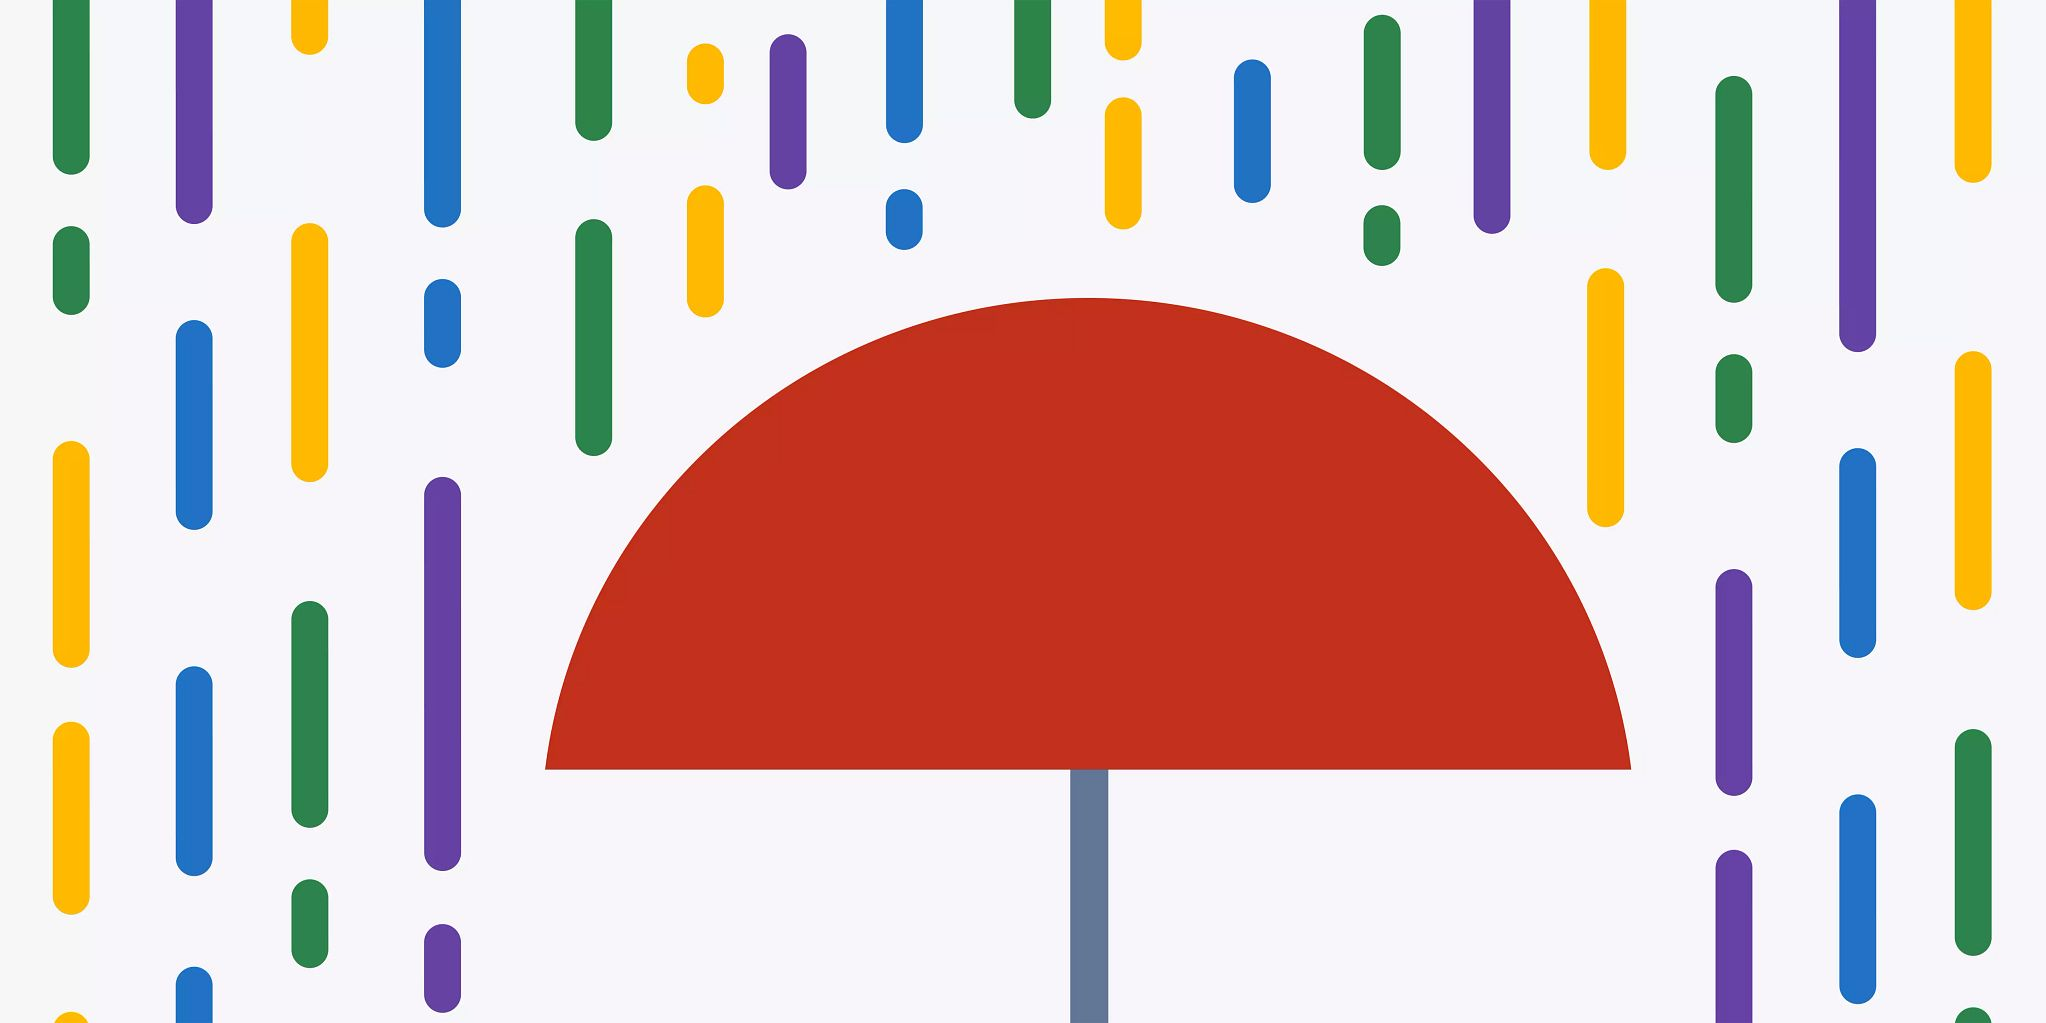 Illustrated graphic of a red umbrella and with blue, yellow, green, and purple vertical lines